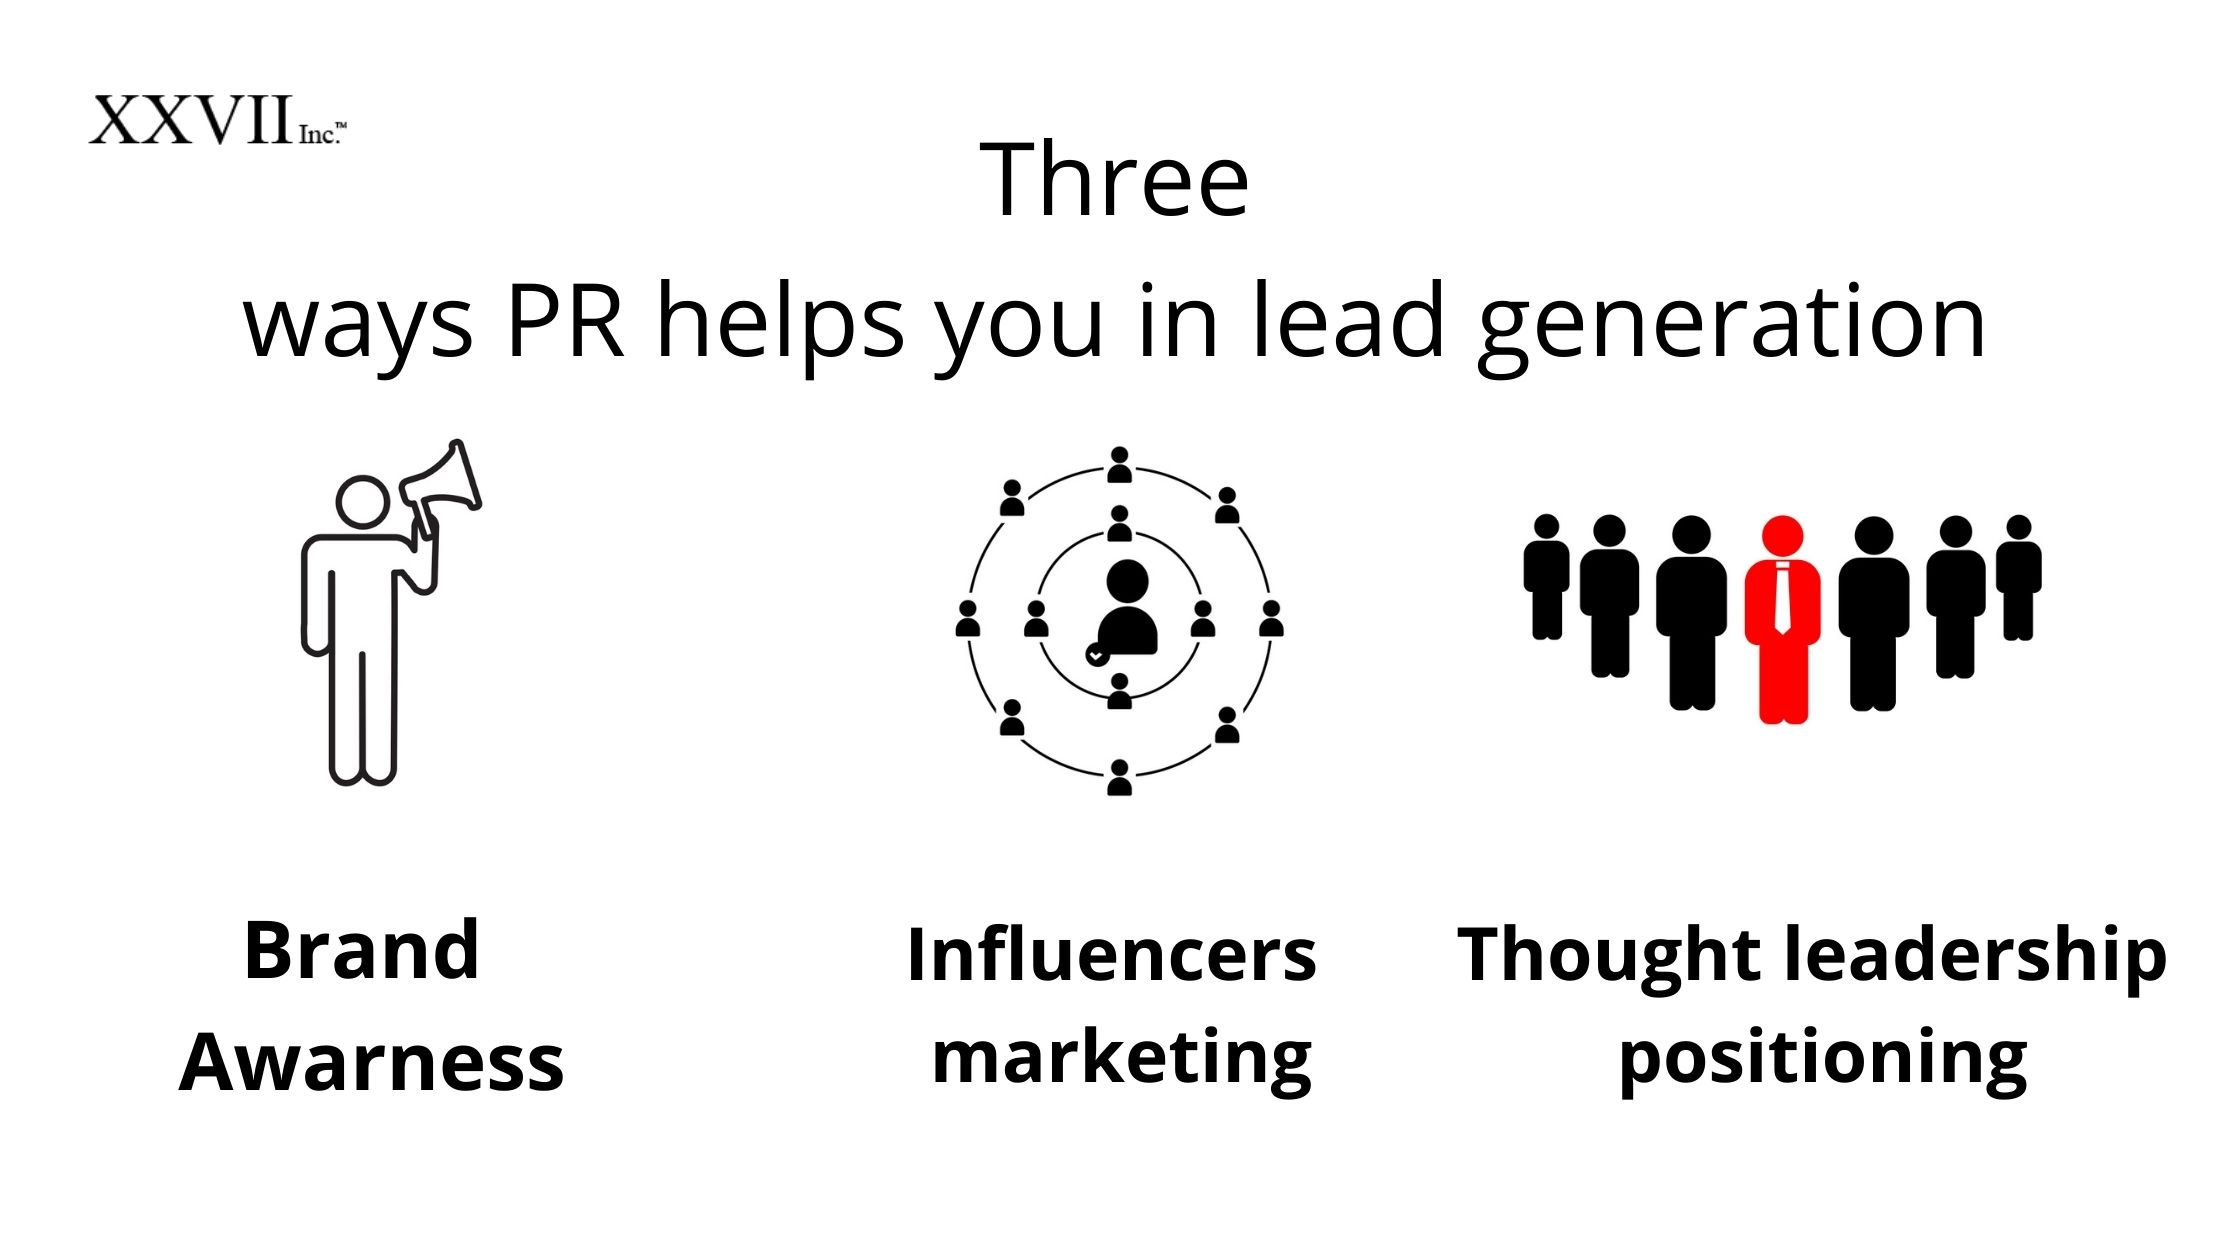 Three ways PR helps you in lead generation: